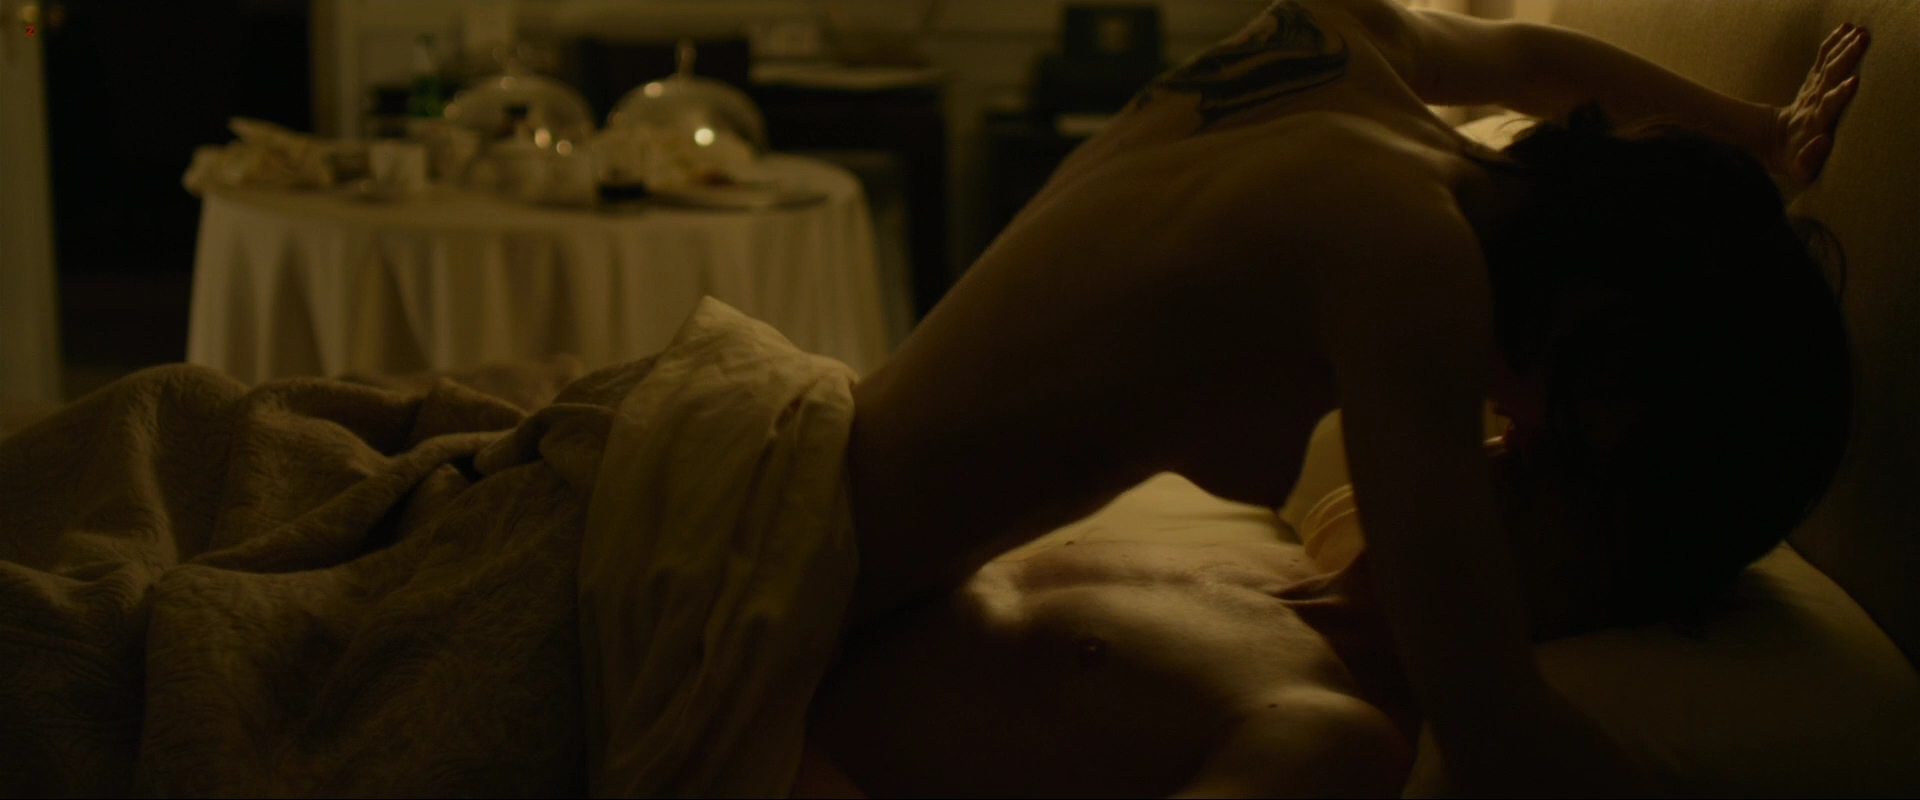 Rooney mara nude the girl with the dragon tattoo 2011